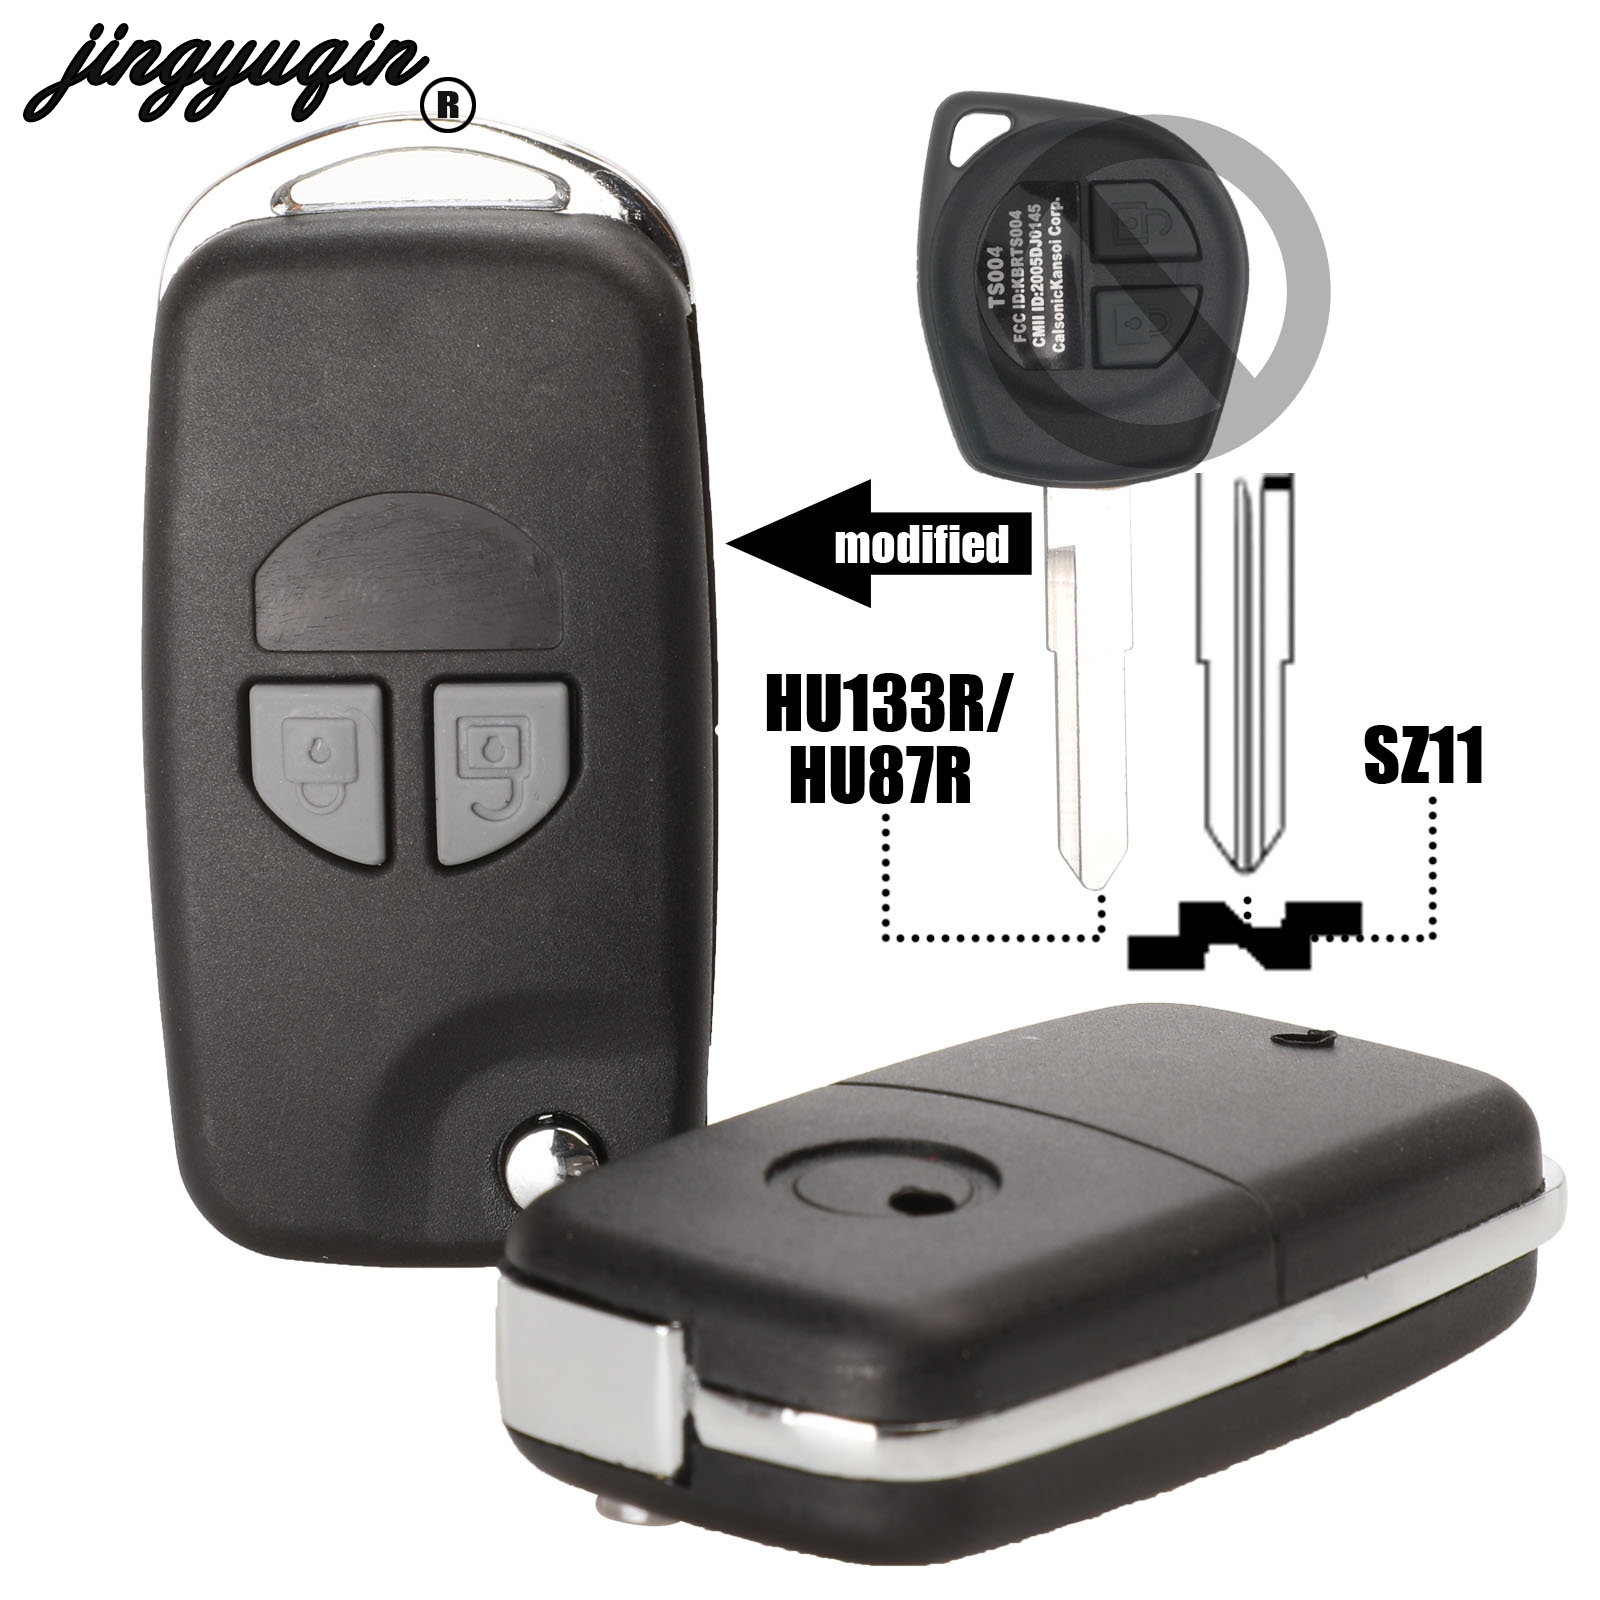 Jingyuqin Modified Flip Folding Remote Key Case Shell Fit For SUZUKI SX4 Swift Grand Vitara Ignis Jimny Splash Wagon R BALENO